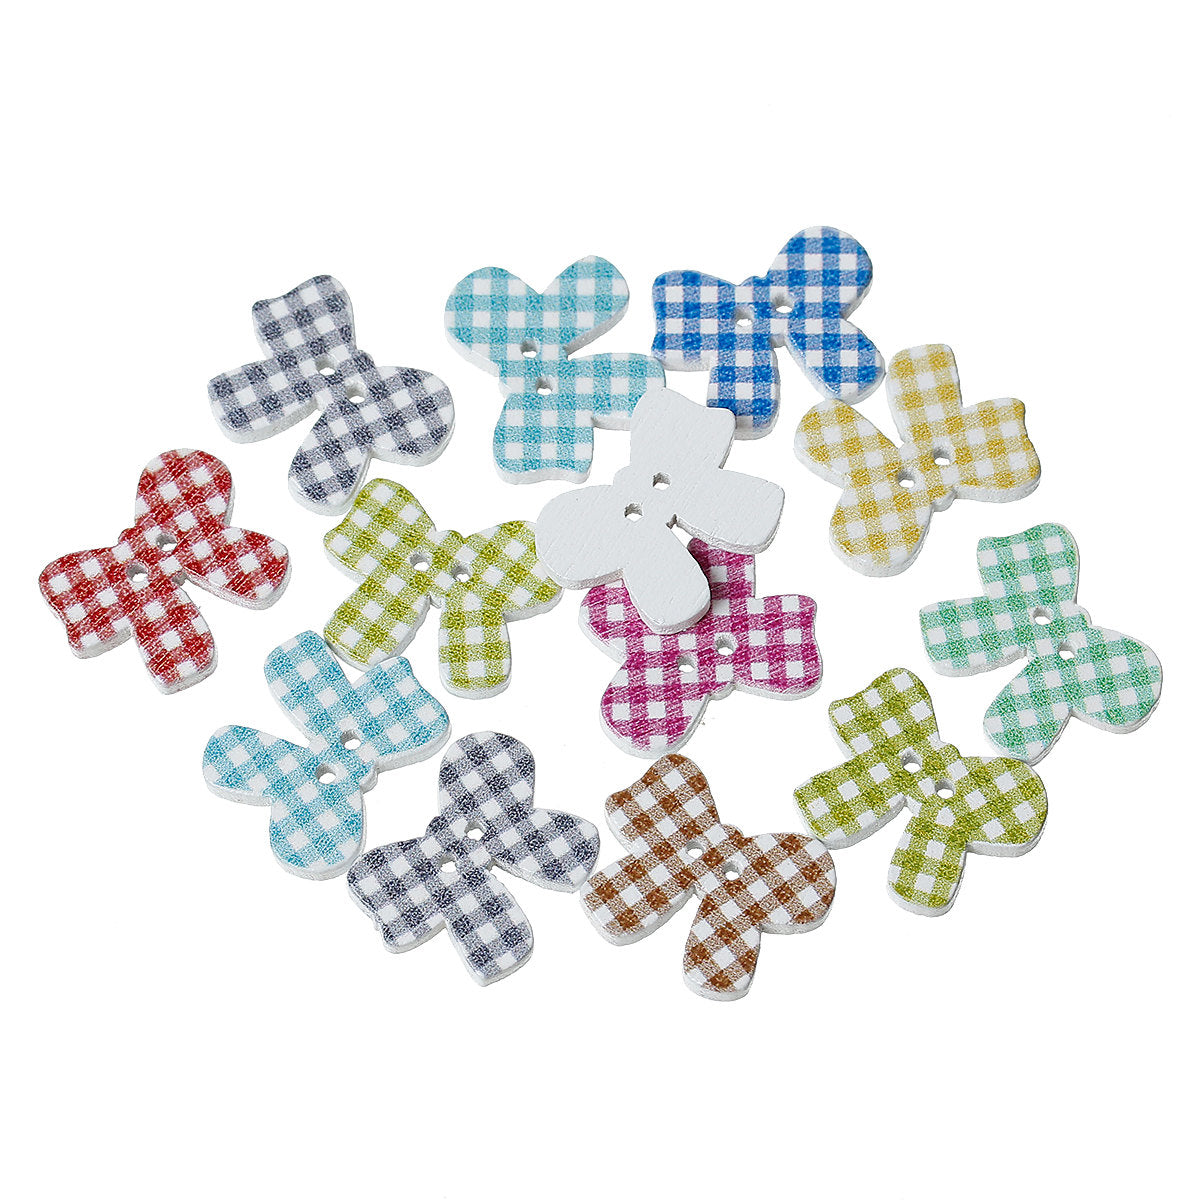 "Bow Shaped Wooden Buttons - 20mm x 16mm (3/4"" x 5/8"") - 2 Hole - Gingham Design"